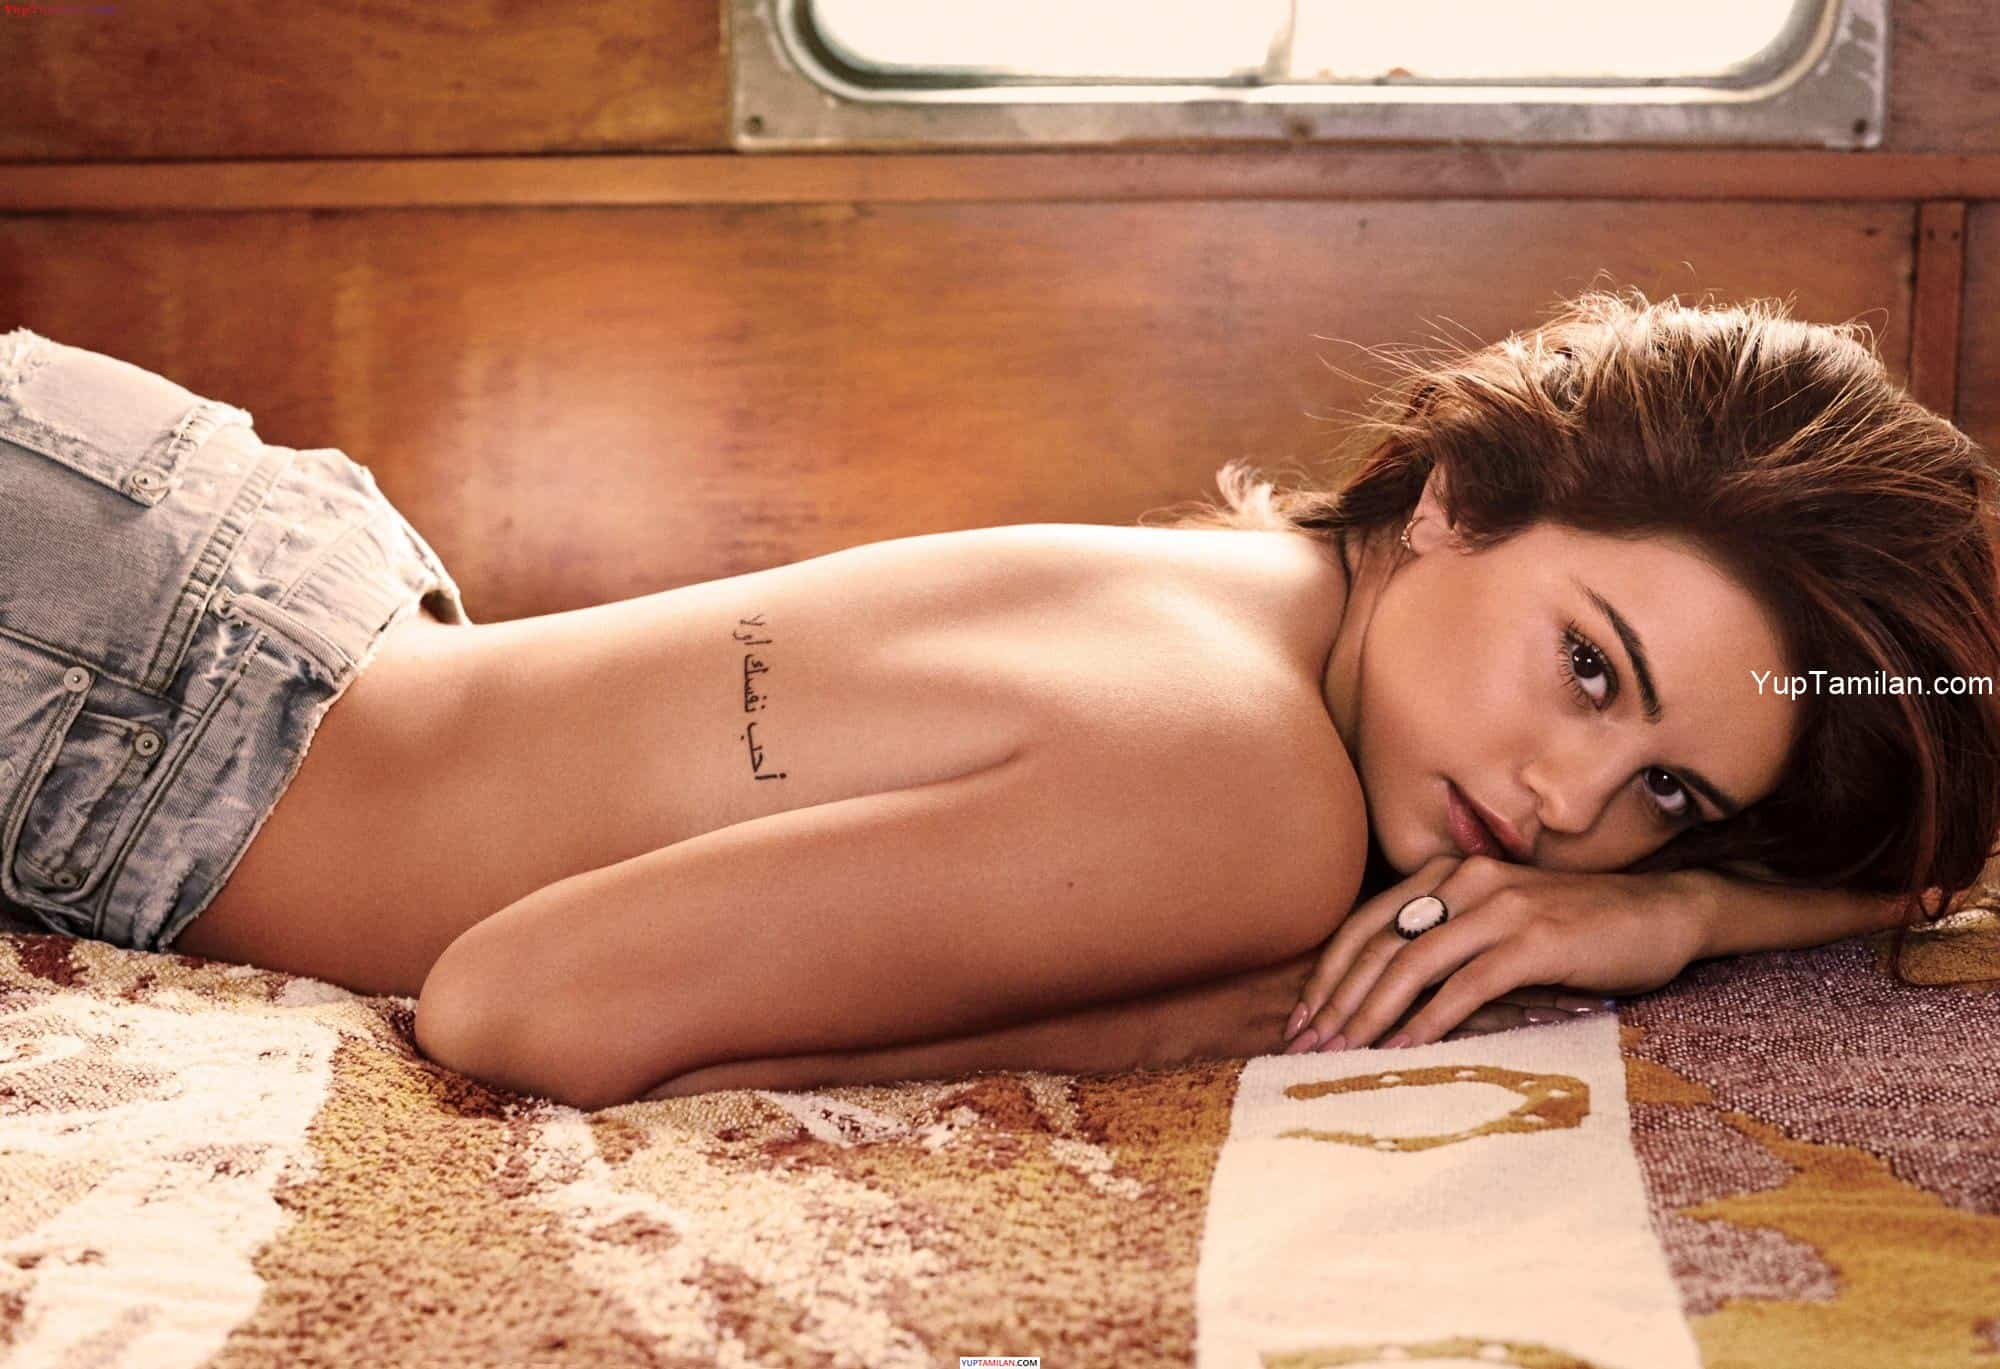 Selena Gomez Sexy Bikini Photos - Hottest Pictures in Lingerie with Cleavage